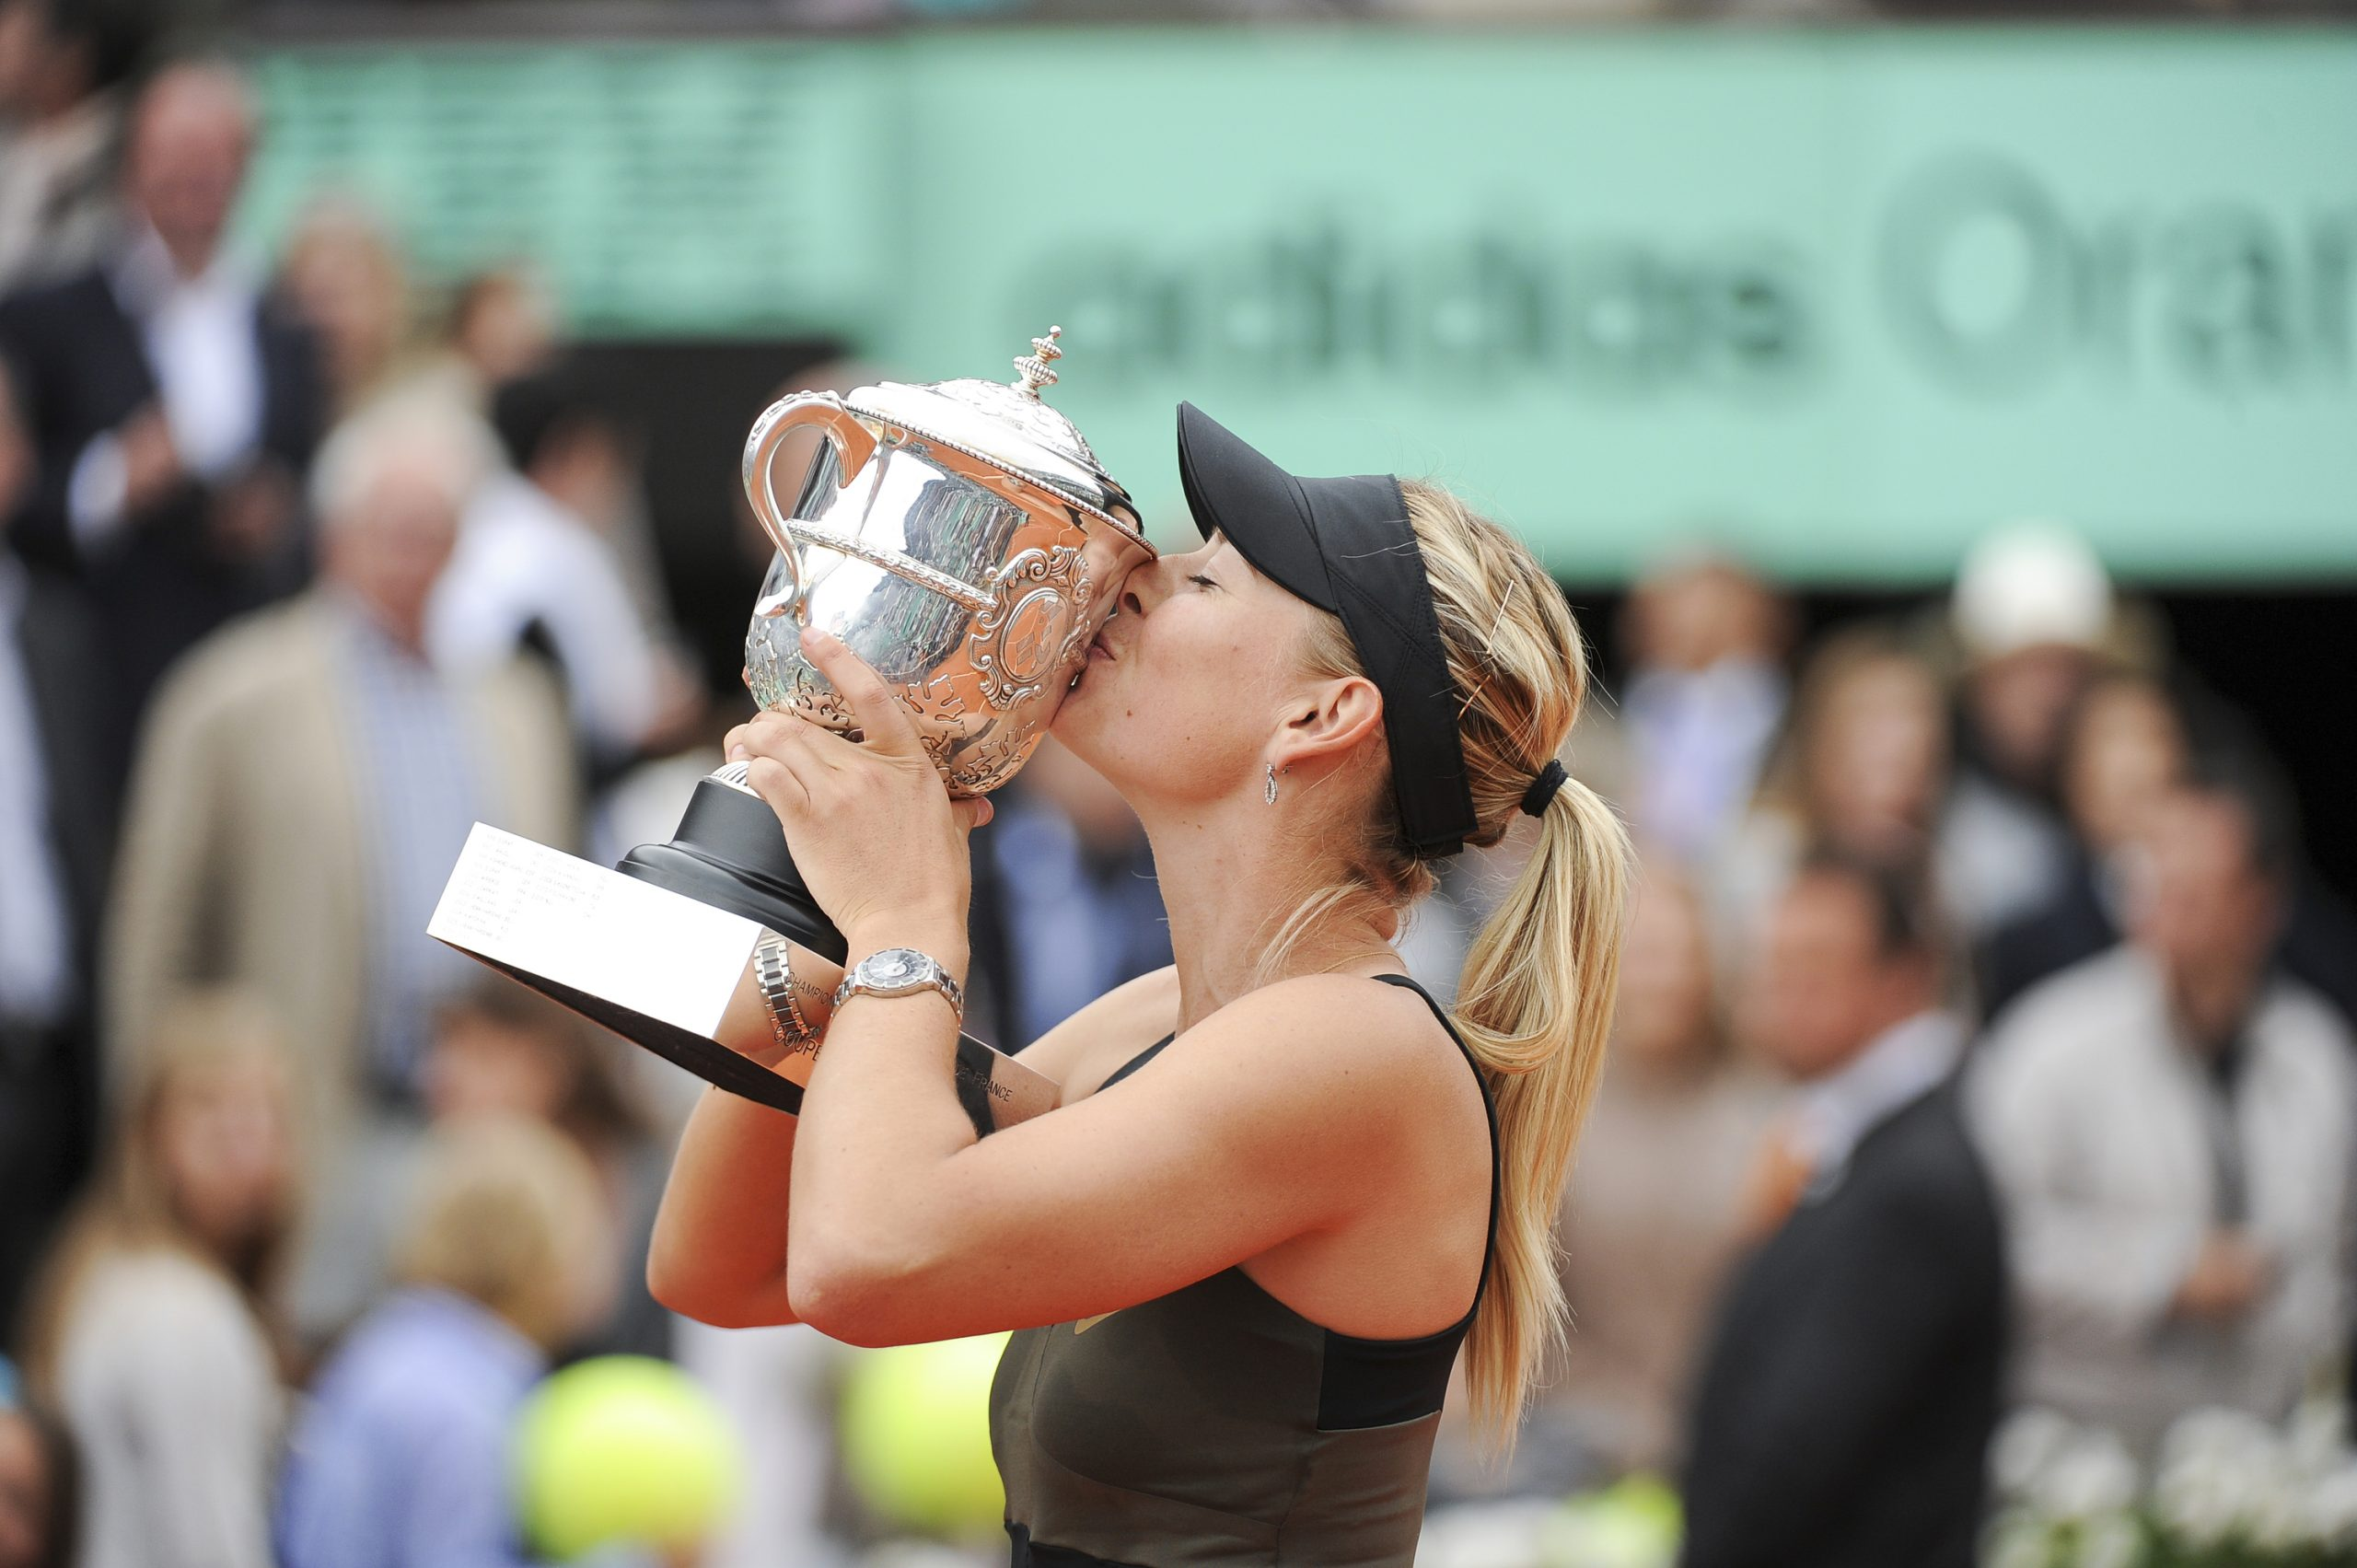 'I'M SAYING GOODBYE' – SHARAPOVA RETIRES AT 32